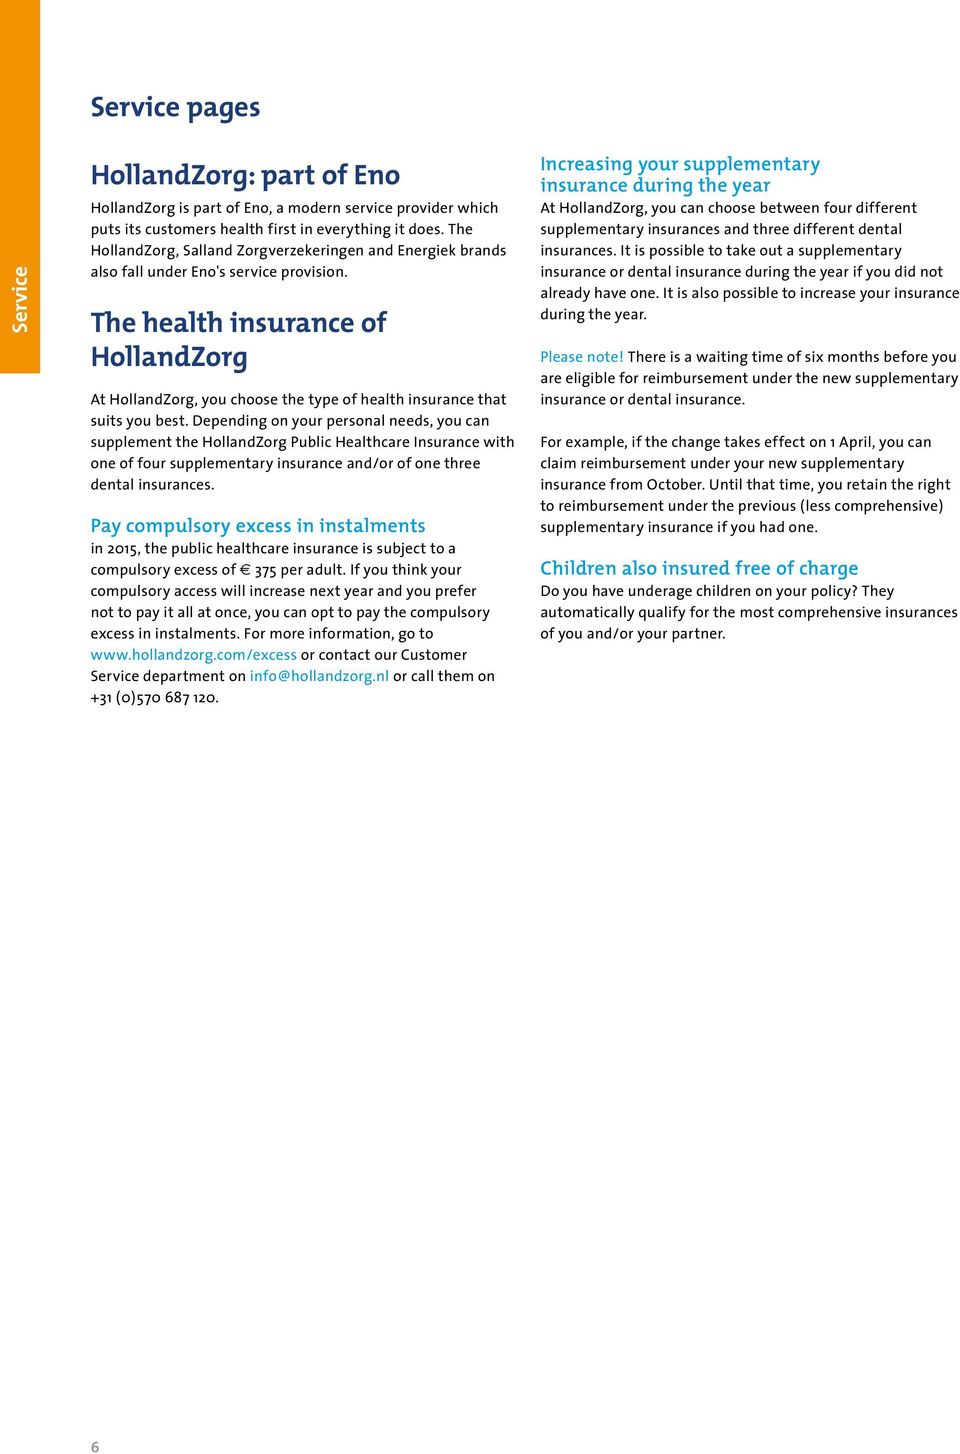 The health insurance of HollandZorg At HollandZorg, you choose the type of health insurance that suits you best.